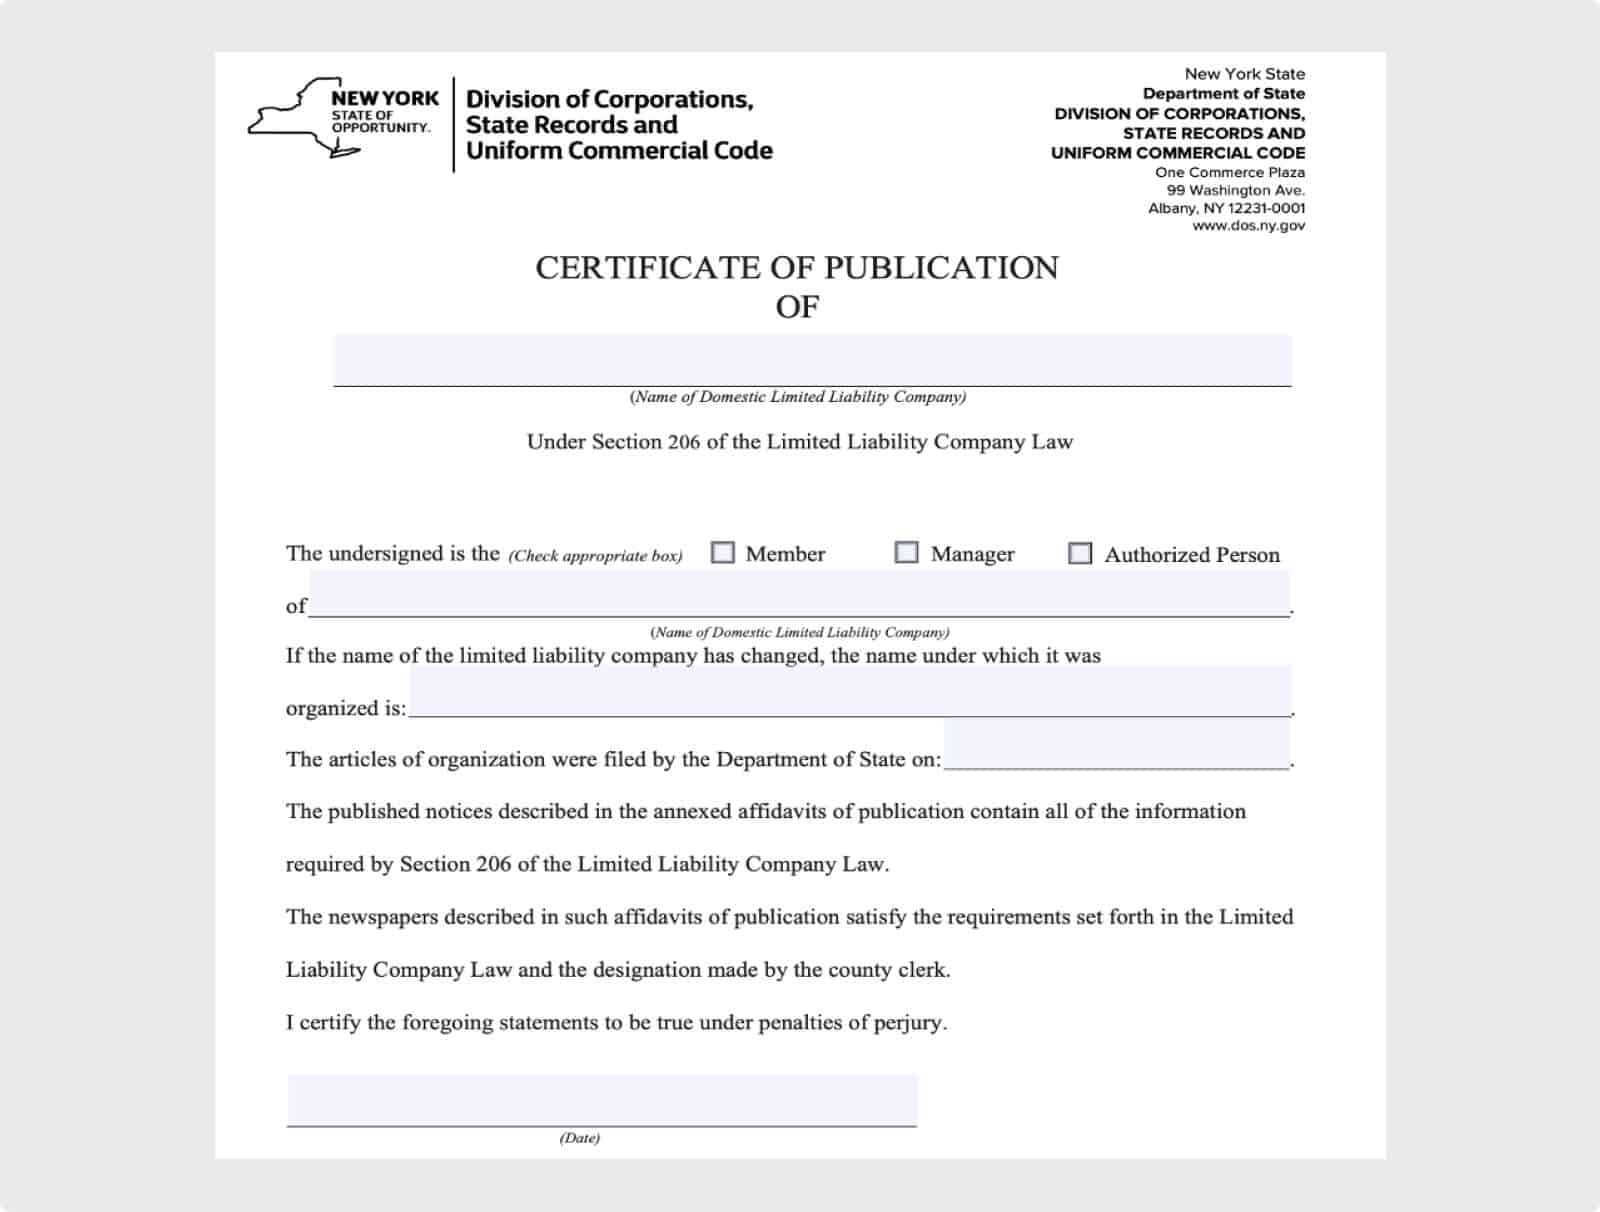 New LLCs in New York must complete the publication requirements.